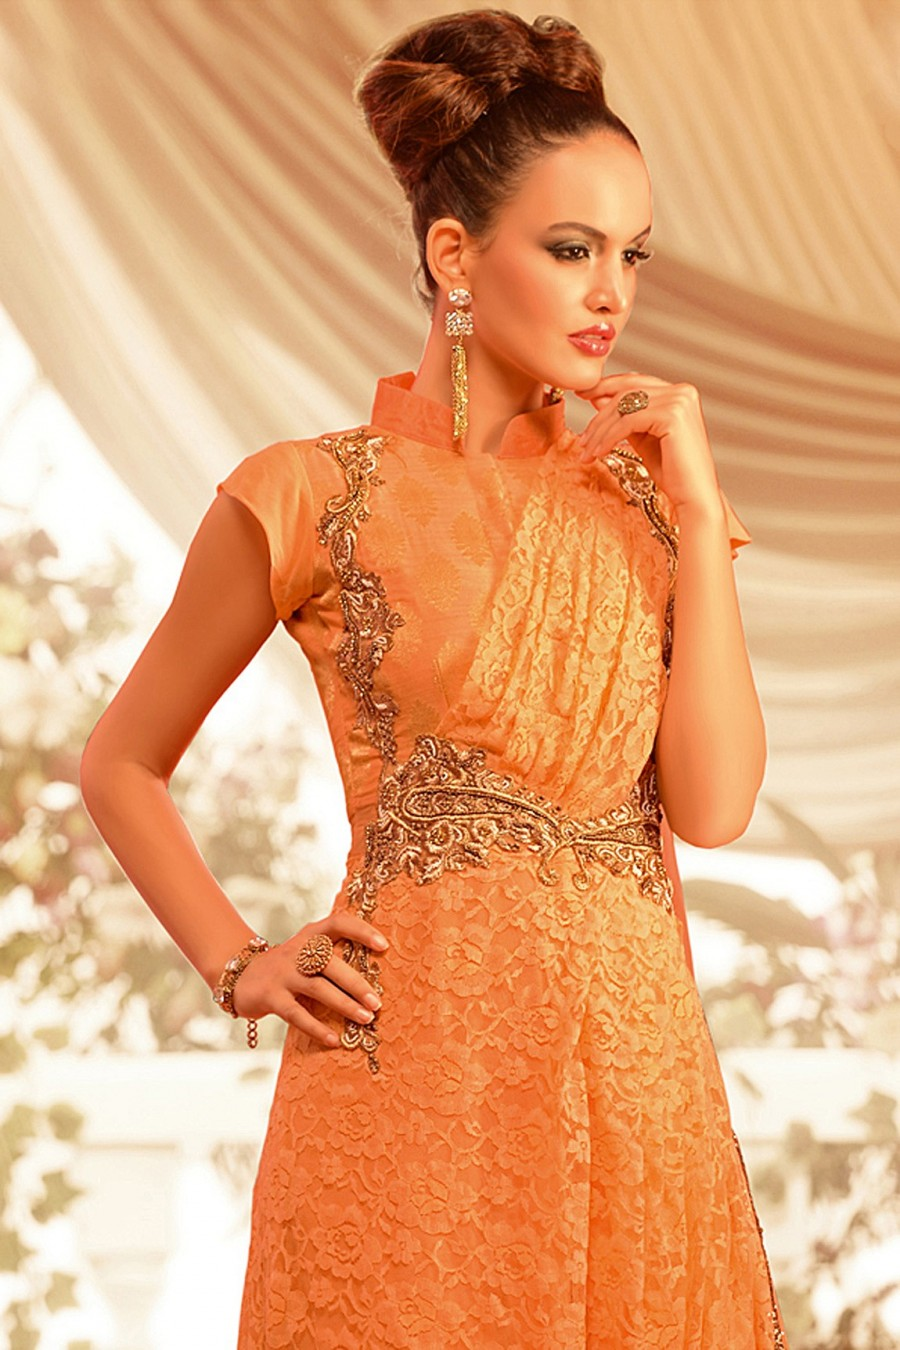 Buy OPULENT LIGHT ORANGE GEORGETTE GOWN Online